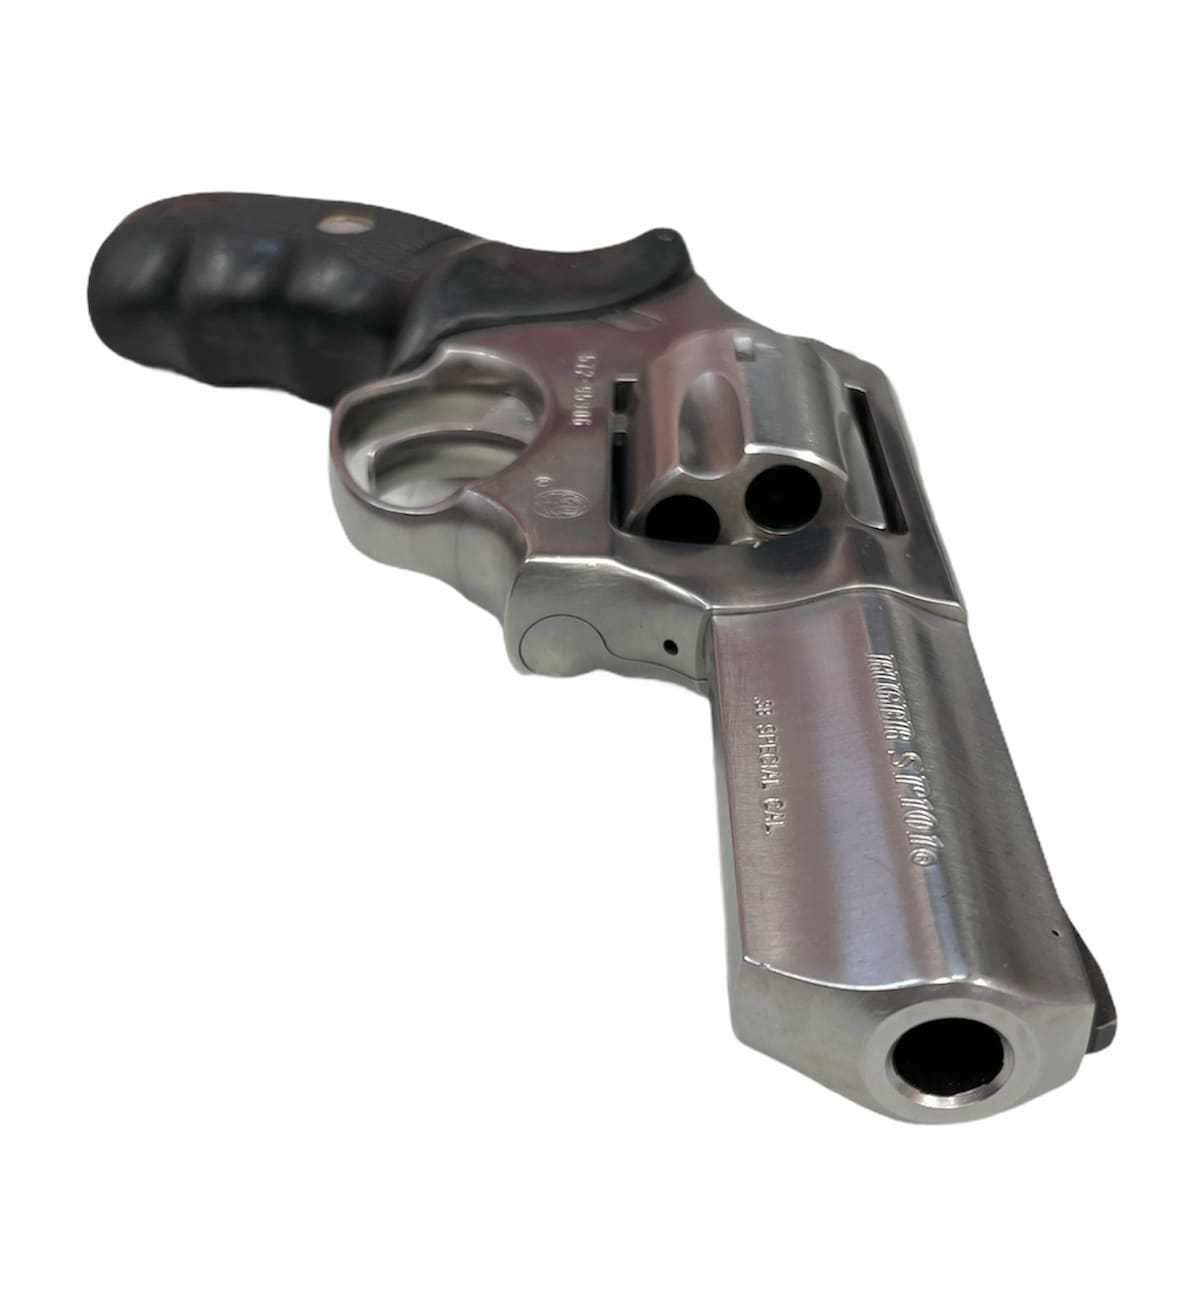 RUGER SP101 Used Police Trade In